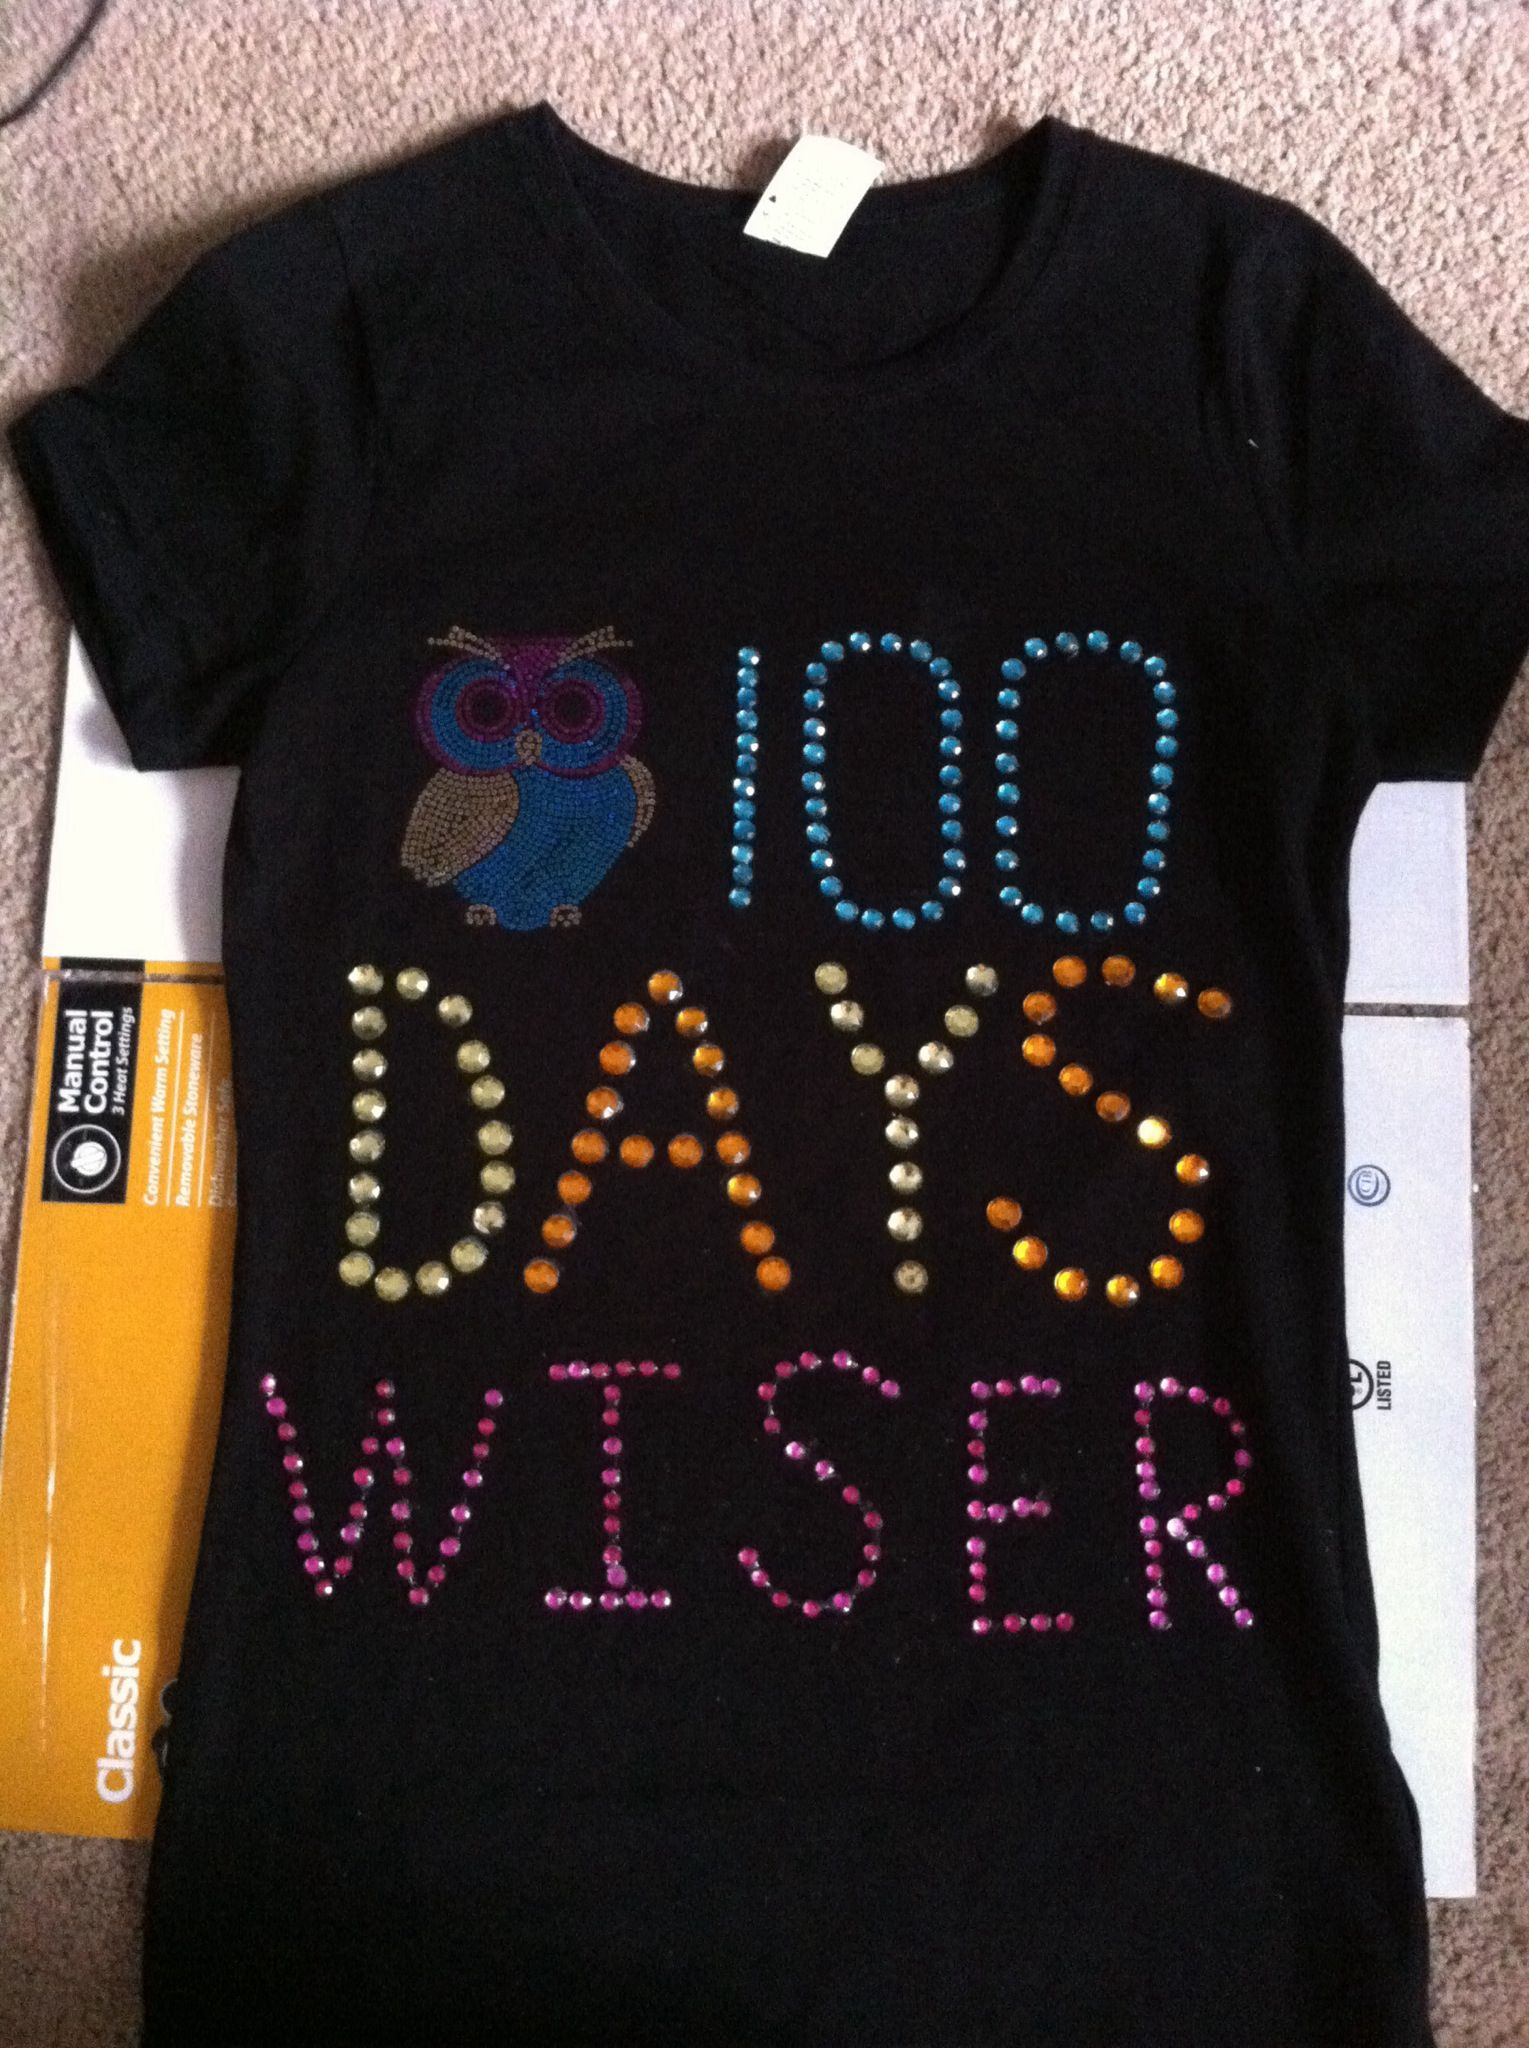 100 Day Of School Shirt With Images 100 Day Of School